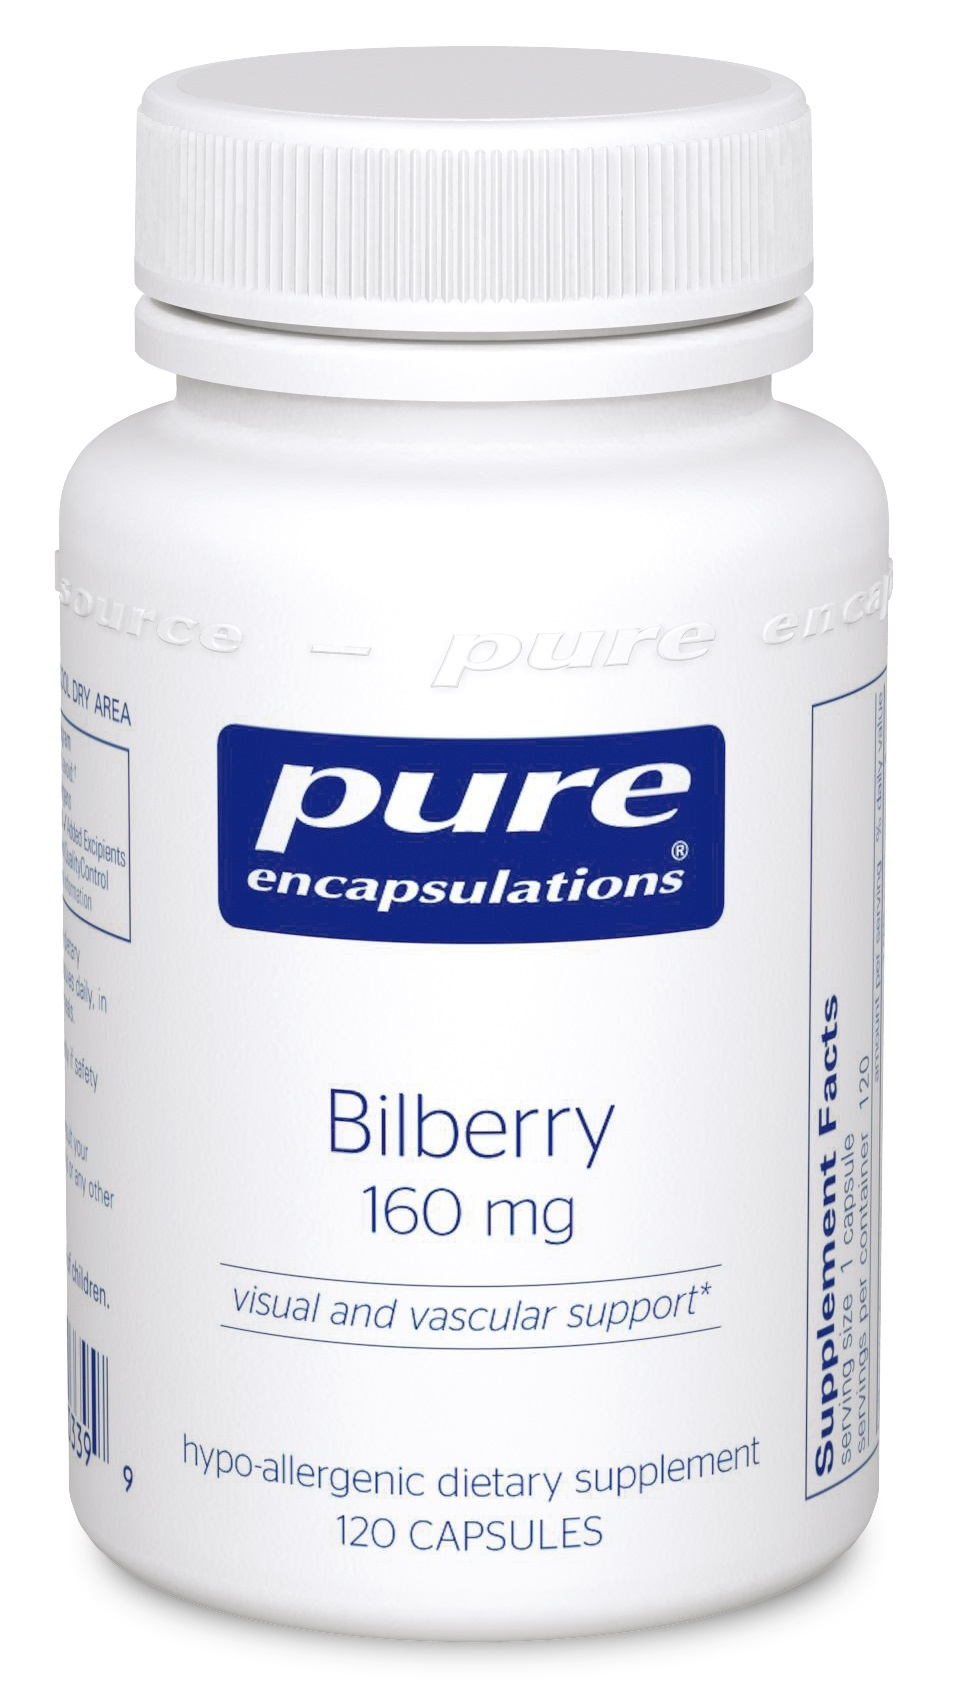 Pure Encapsulations Bilberry 160 mg